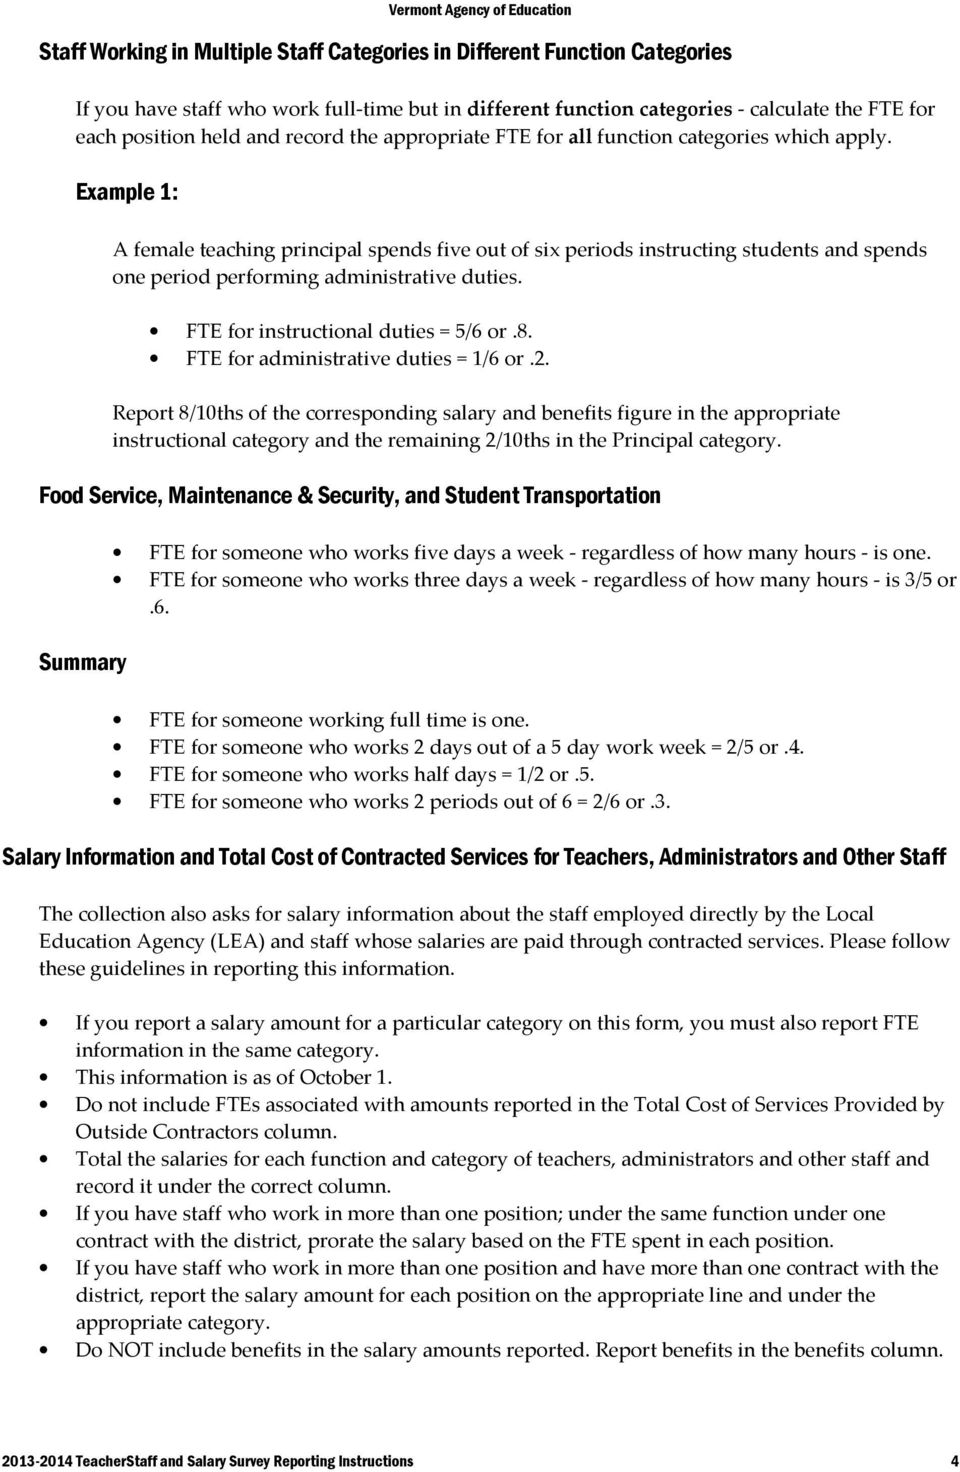 Example 1: A female teaching principal spends five out of six periods instructing students and spends one period performing administrative duties. FTE for instructional duties = 5/6 or.8.